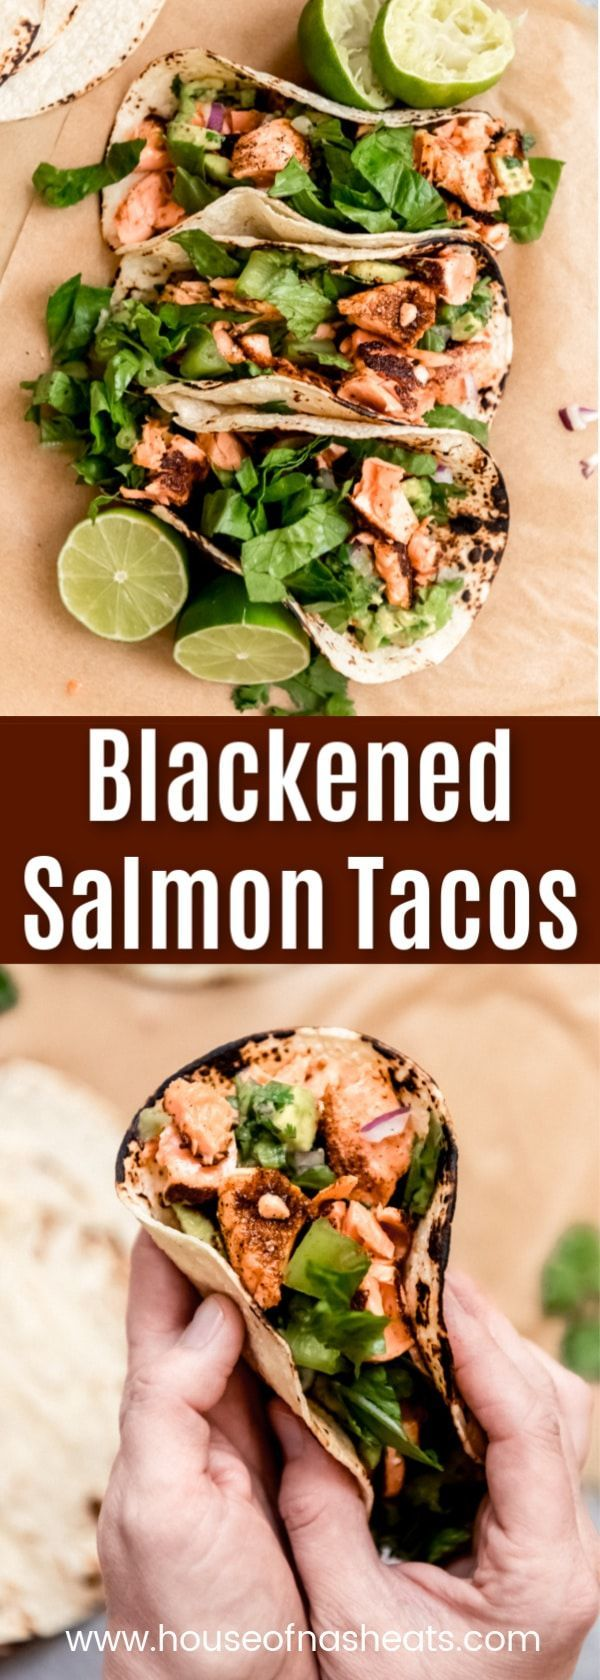 Salmon Tacos These incredible Blackened Salmon Tacos topped with avocado salsa are incredibly fresh and flavorful! Served on charred corn or flour tortillas with crunchy romaine lettuce, these easy fish tacos come together in less than 30 minutes for a wonderful dinner any night of the week!These incredible Blackened Salmon Tacos ...